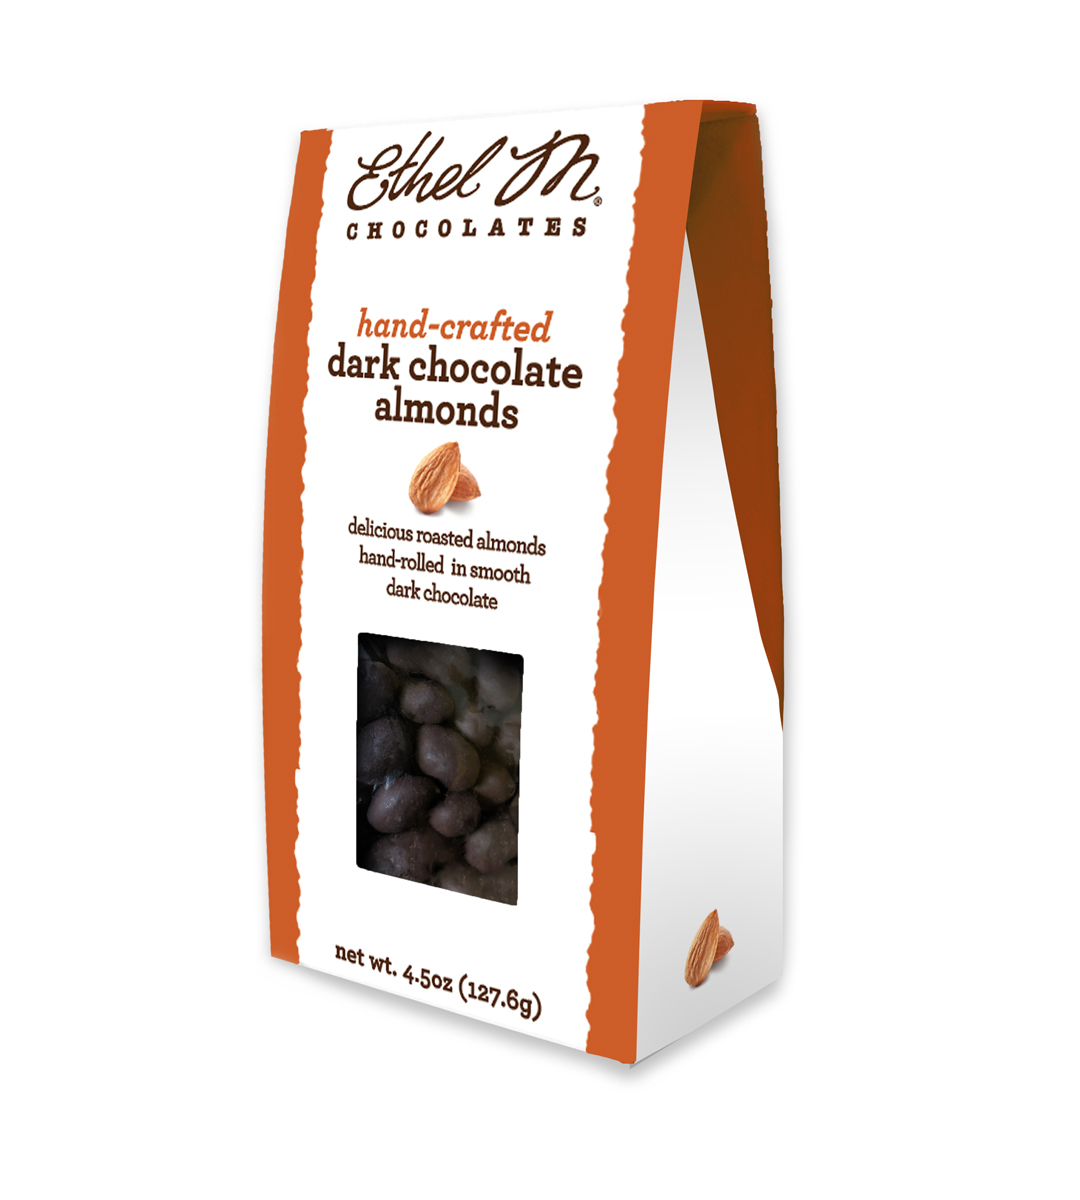 Panned Dark Almonds